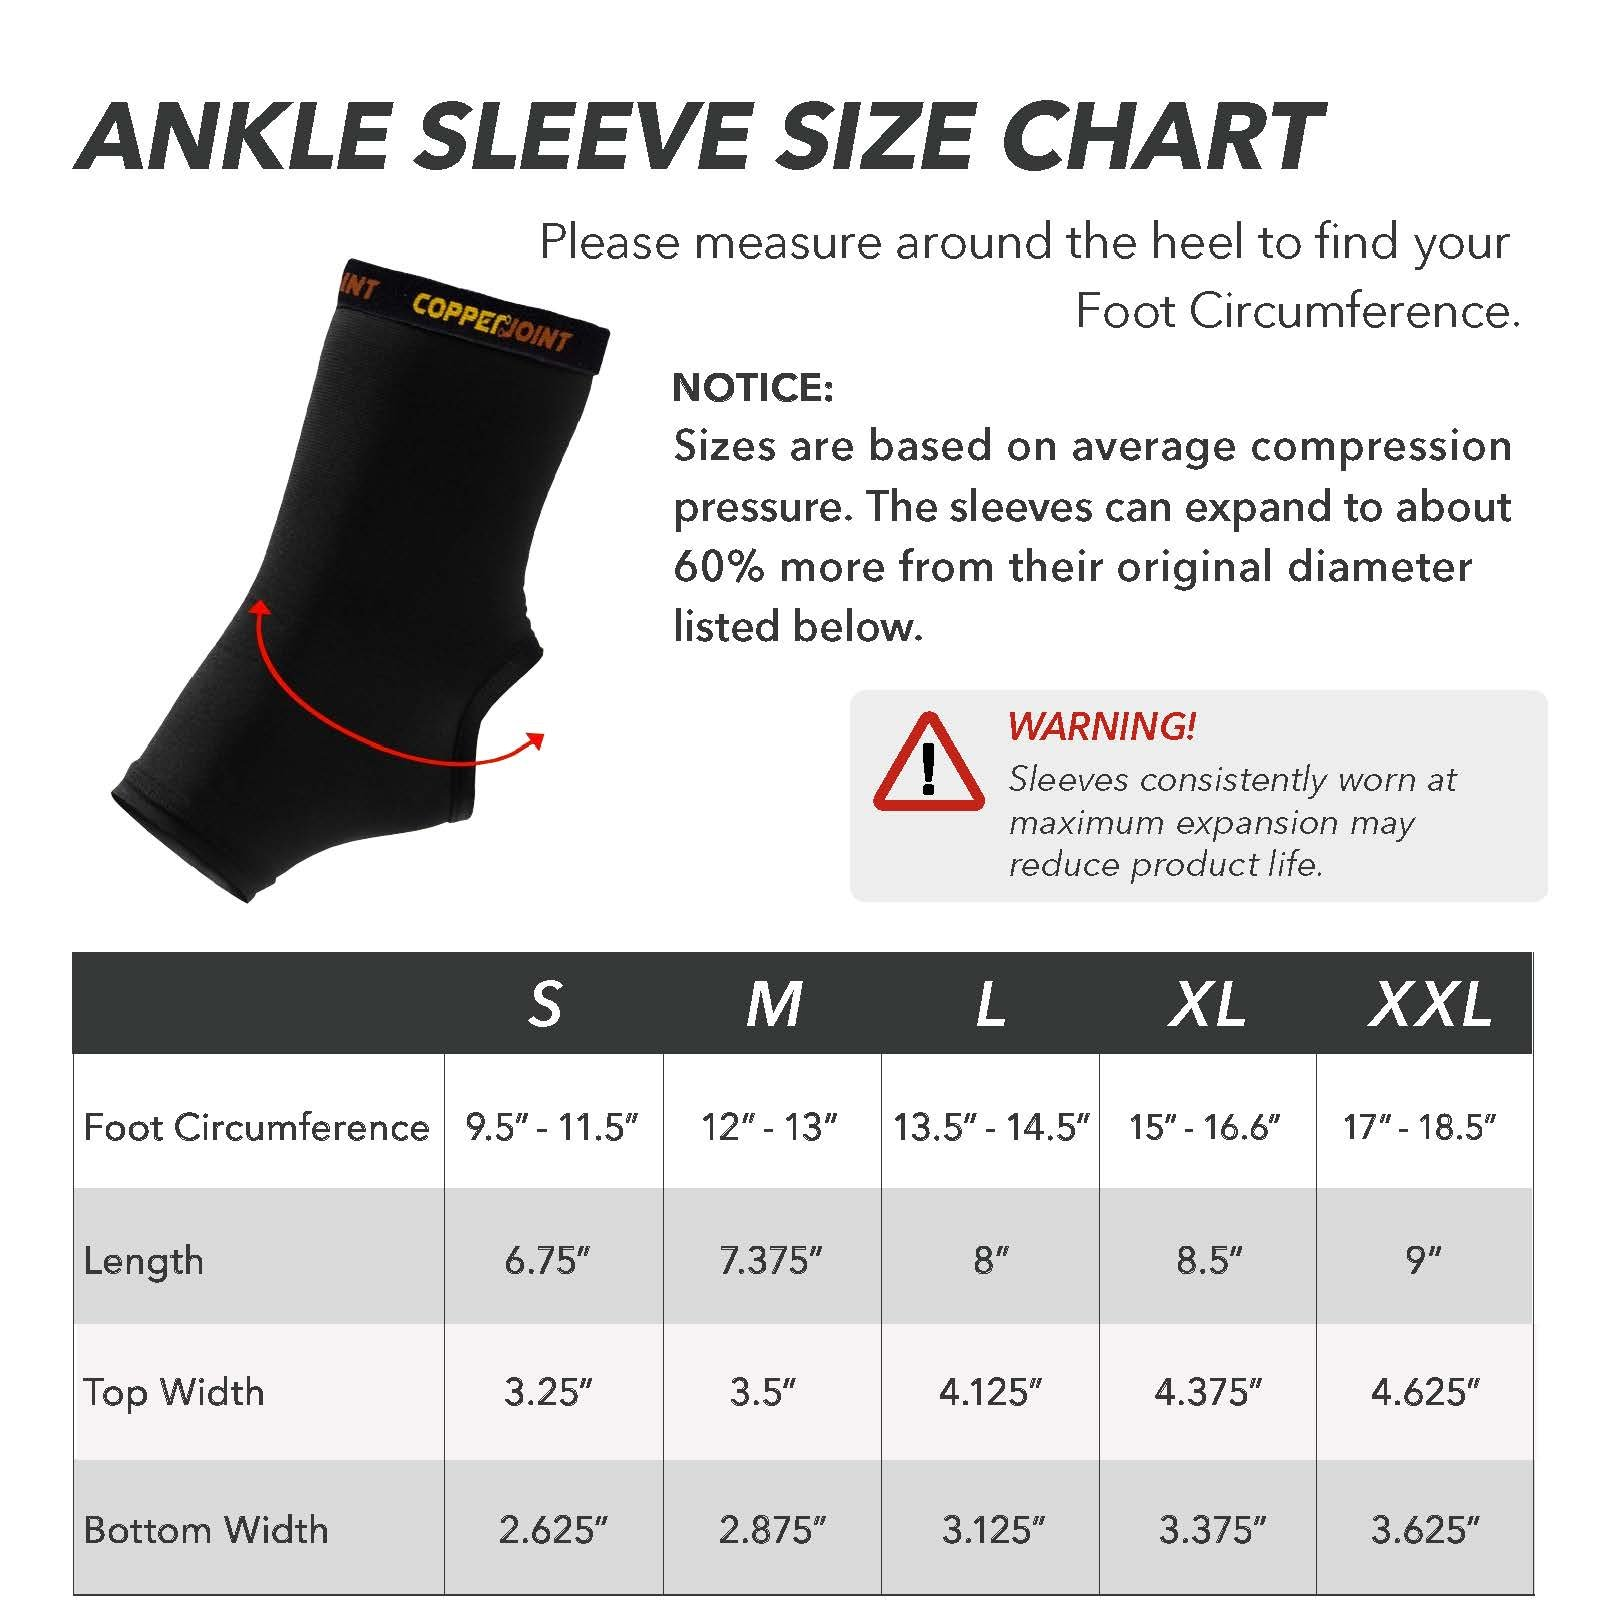 CopperJoint Copper-Infused Compression Ankle Sleeve, High-Performance, Breathable Design Provides Comfortable and Durable Joint Support for All Lifestyles, Single Sleeve (Medium) by CopperJoint (Image #4)